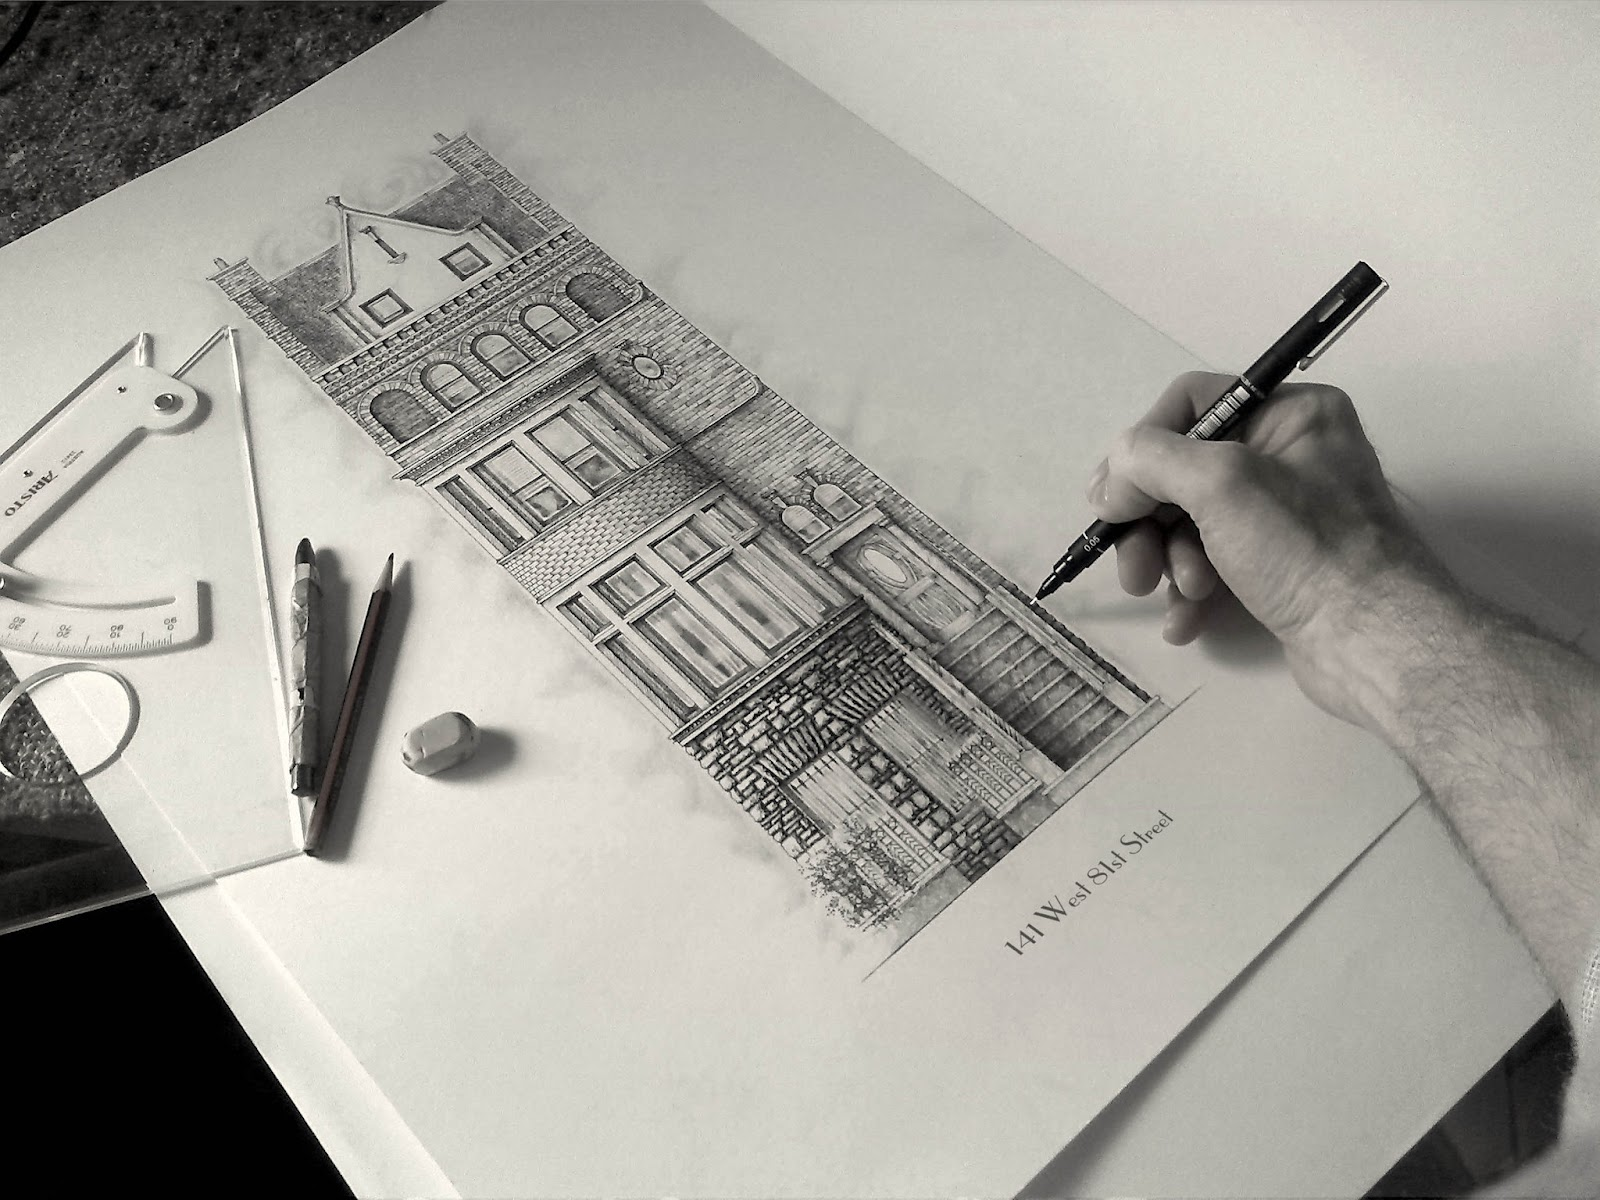 07-Dutch-Style-Townhouse-New-York-City-Jamie-Cameron-Intricate-Architectural-Drawings-and-Illustrations-www-designstack-co